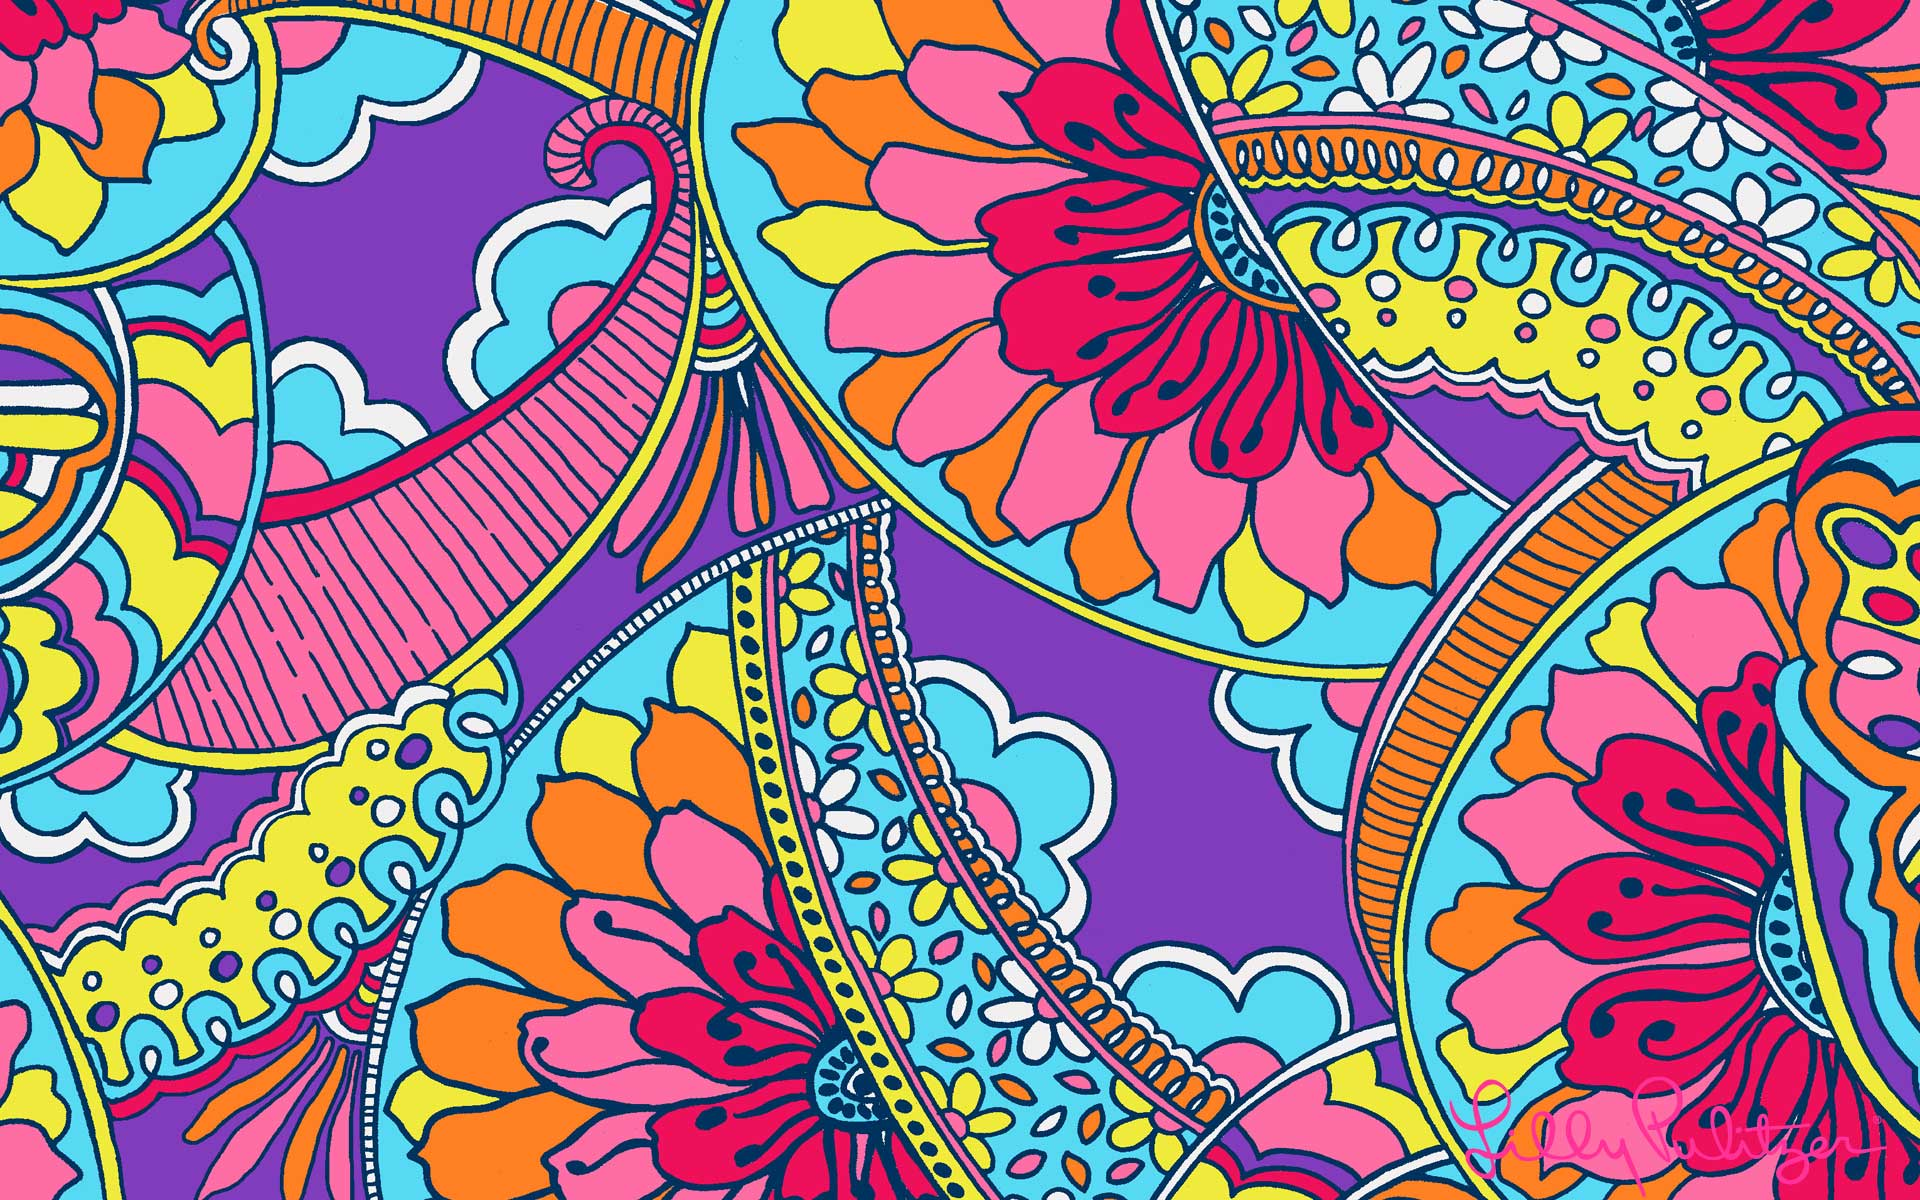 Fall Lilly Pulitzer Wallpaper Lilly Pulitzer Thecarpetbaggernyc